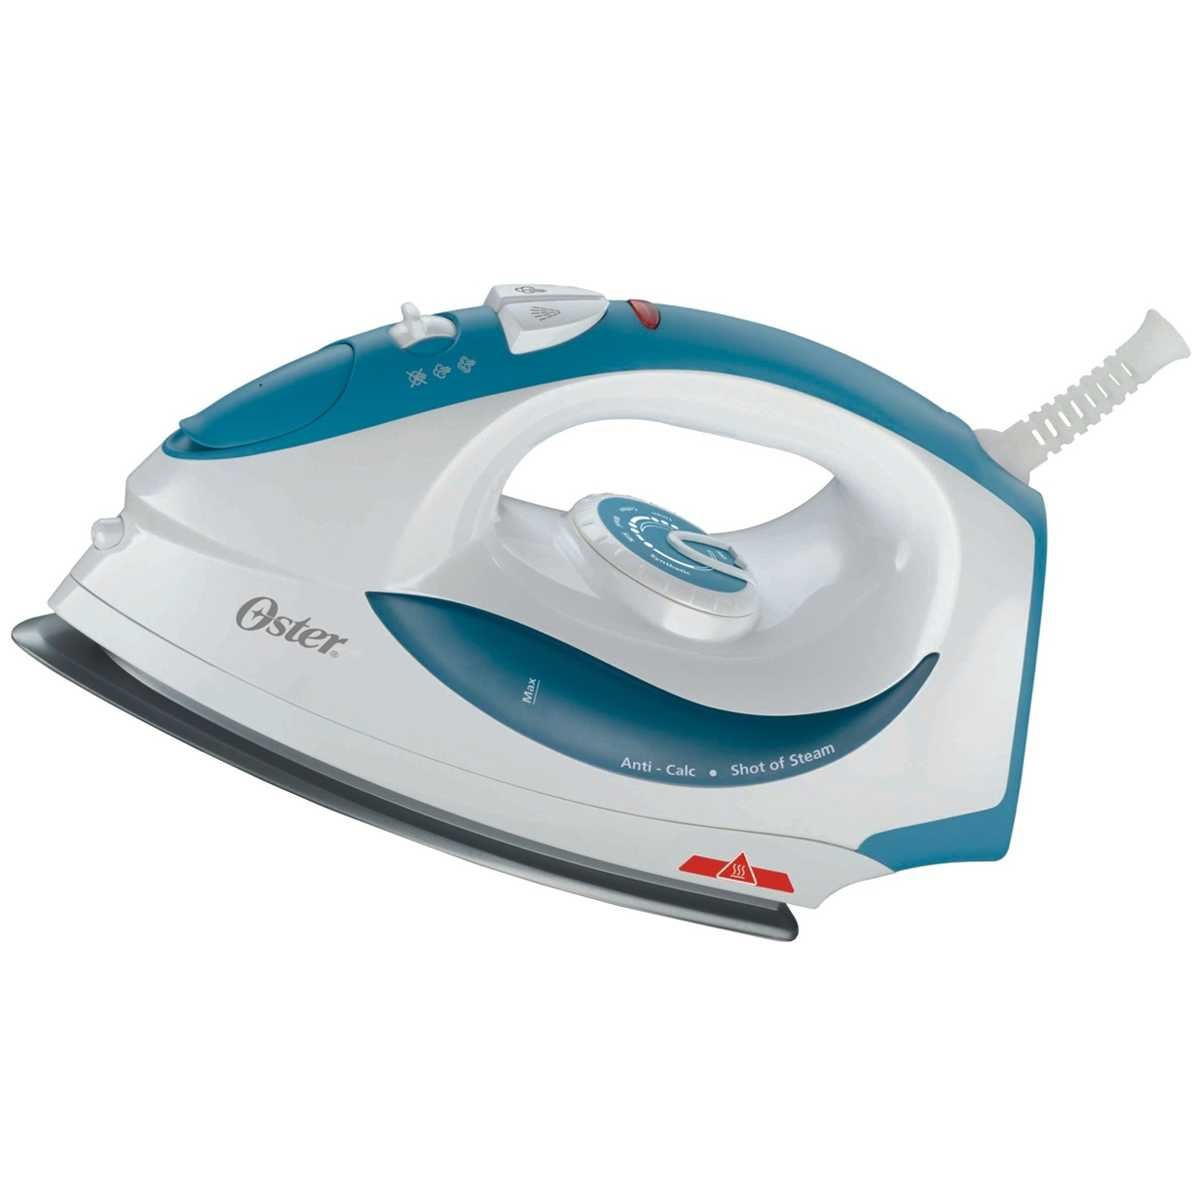 Picture of Oster Steam Iron 5805